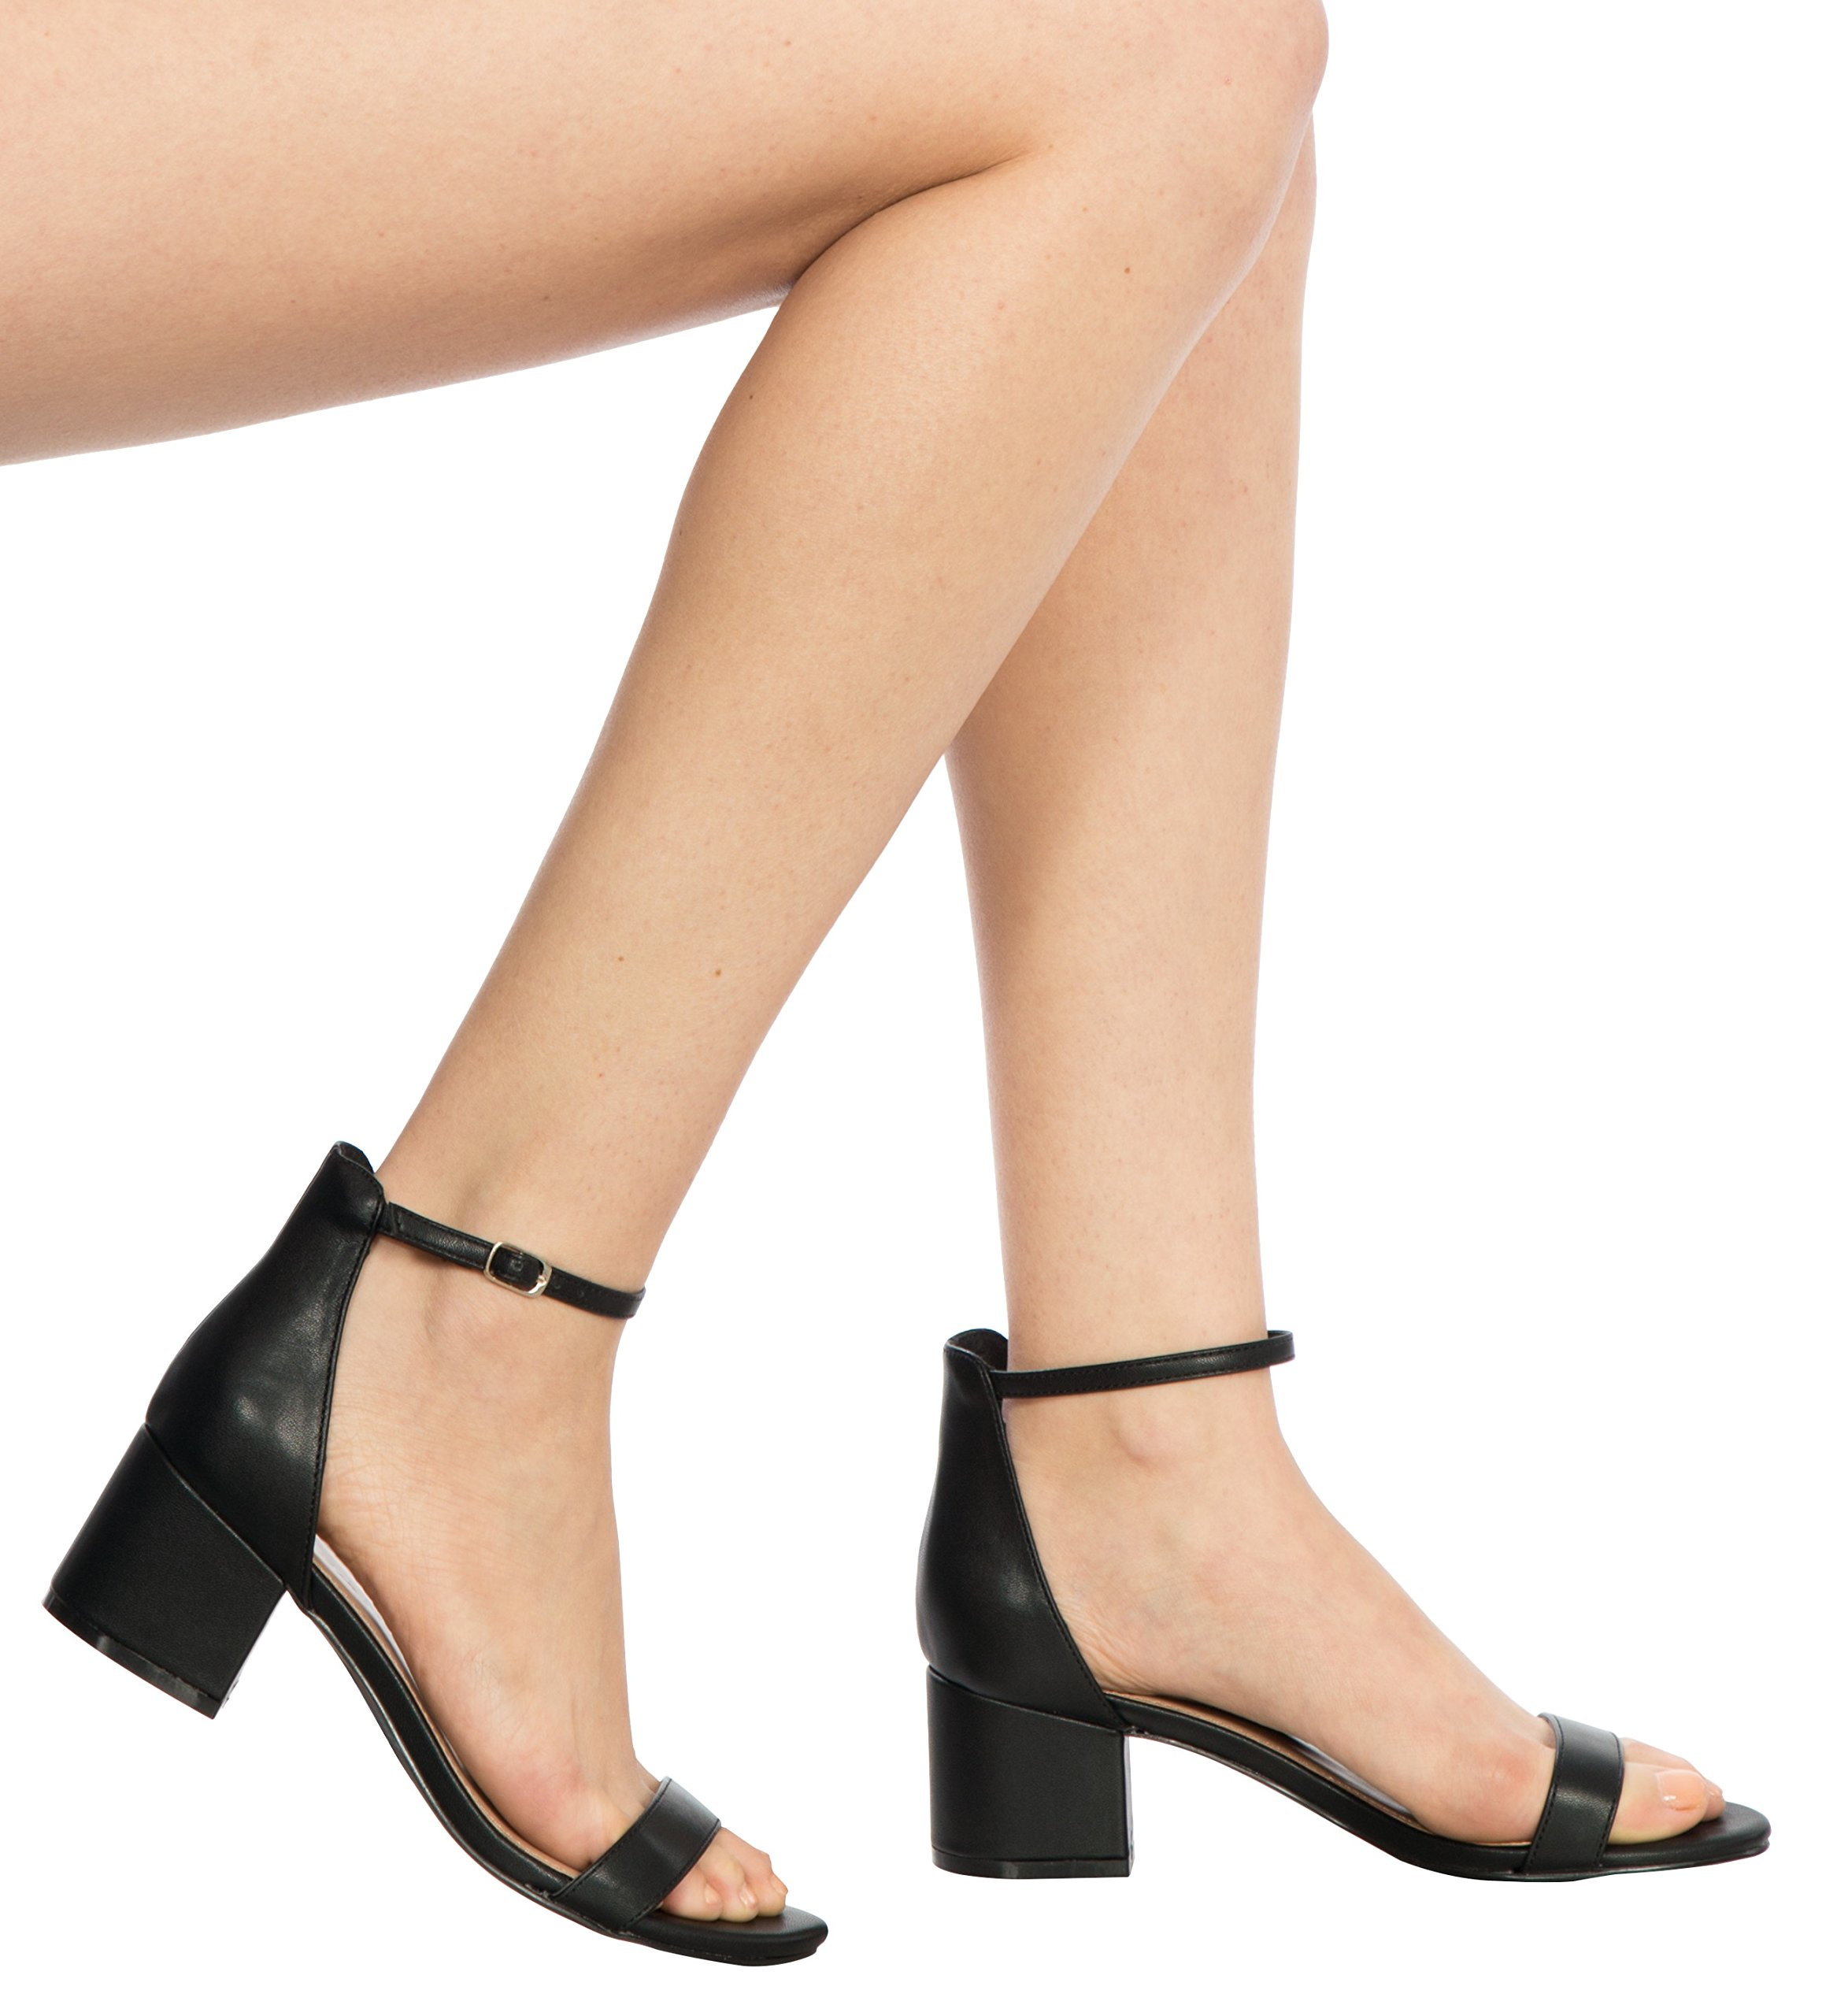 OLIVIA K Women's Ankle Strap Kitten Heel – Adorable Low Block Heel,Black Pu,8.5 B(M) US by OLIVIA K (Image #4)